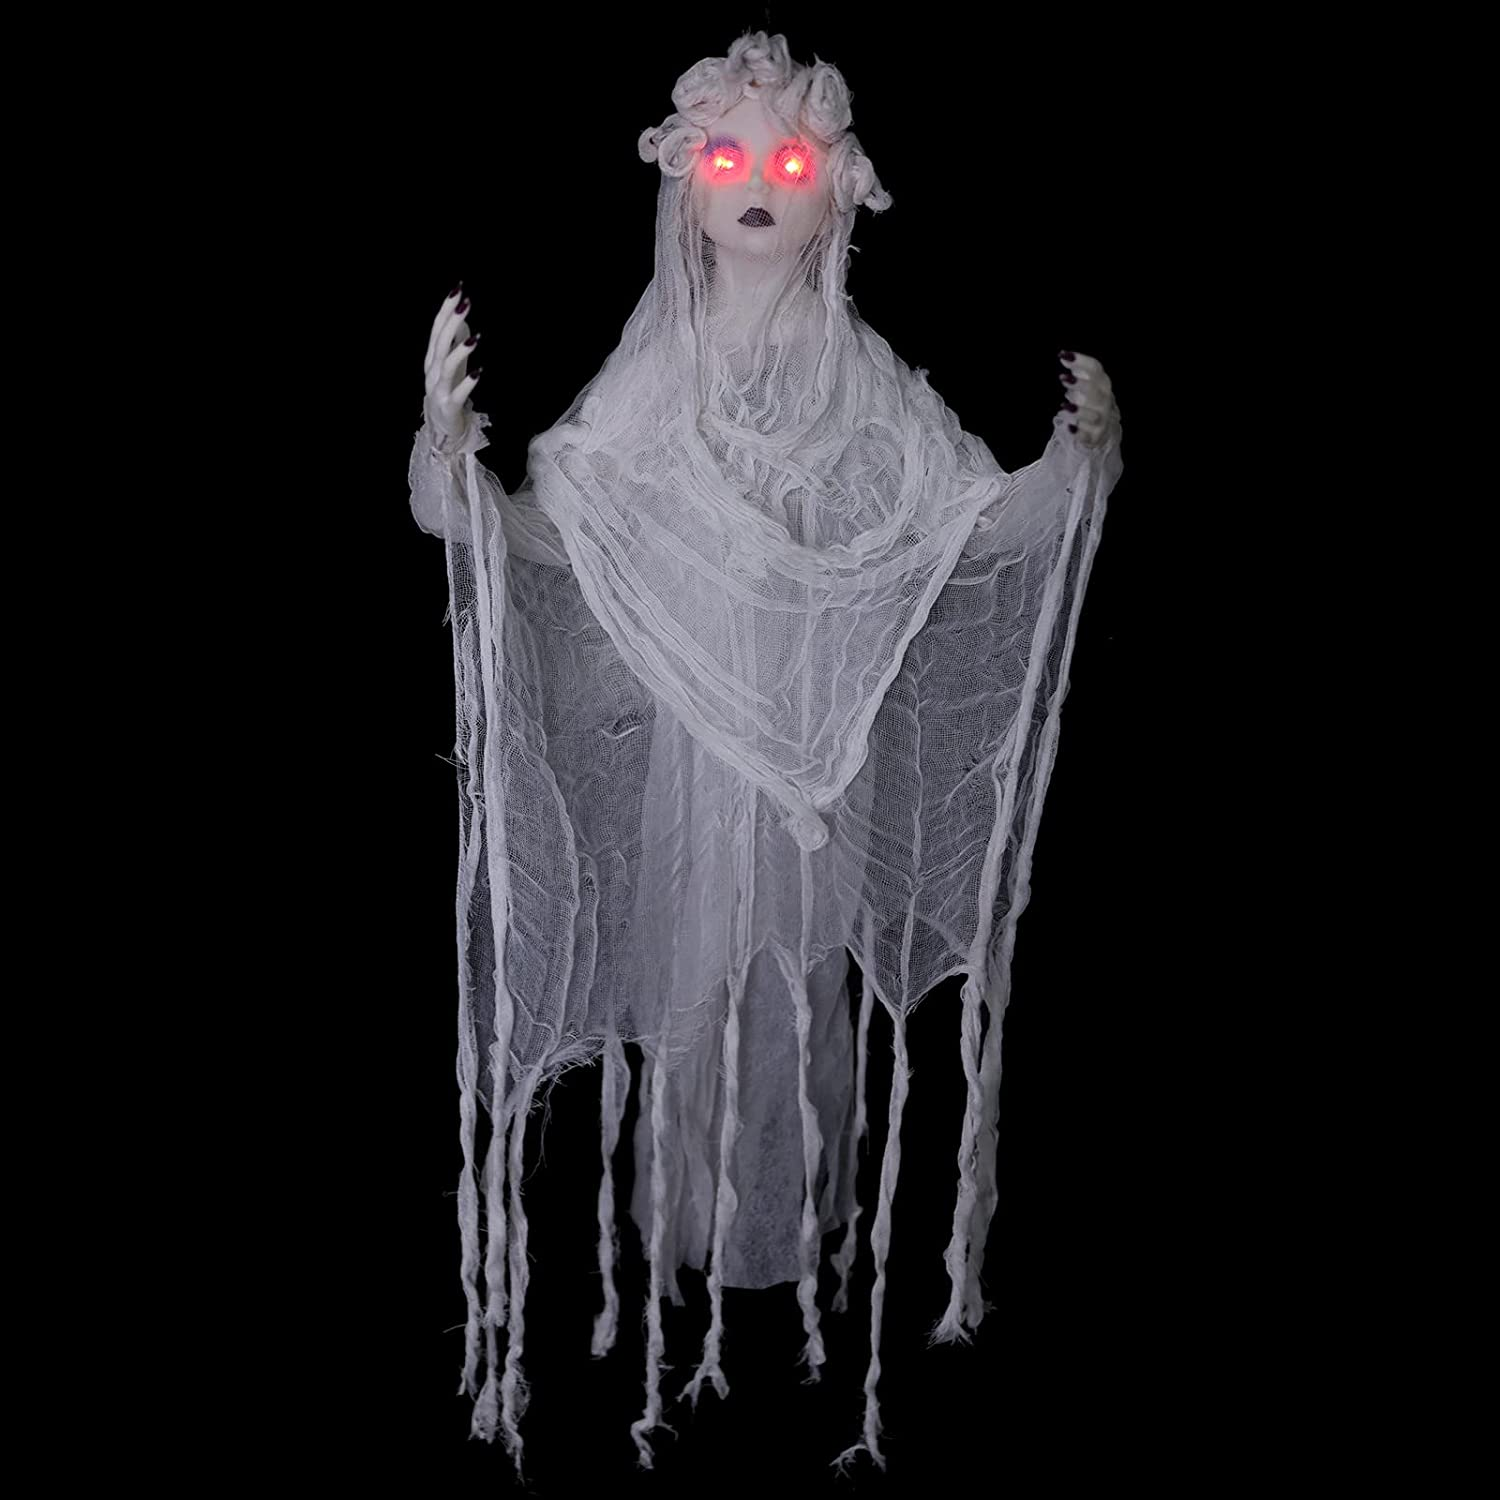 HOLLO STAR Halloween Decor Creepy Animated White Princess, LED Eyes and Frightening Scream, Hanging House Prop Decorations, Indoor/Outdoor Halloween Props for Yard Home Parties - 2.95ft